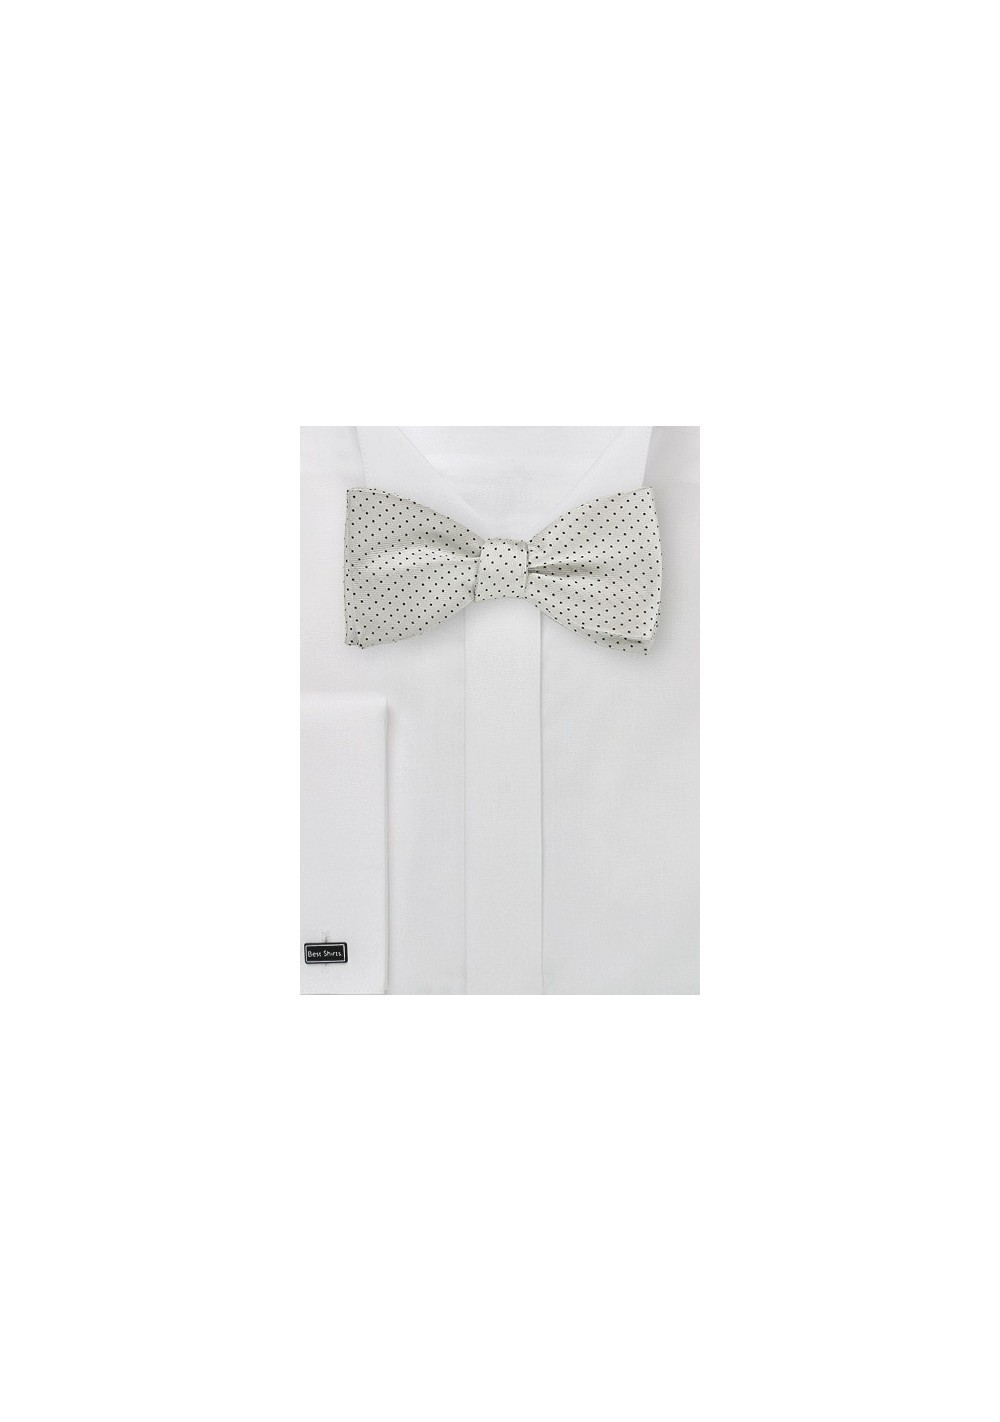 Elegant Silver and Black Pin Dot Bow Tie